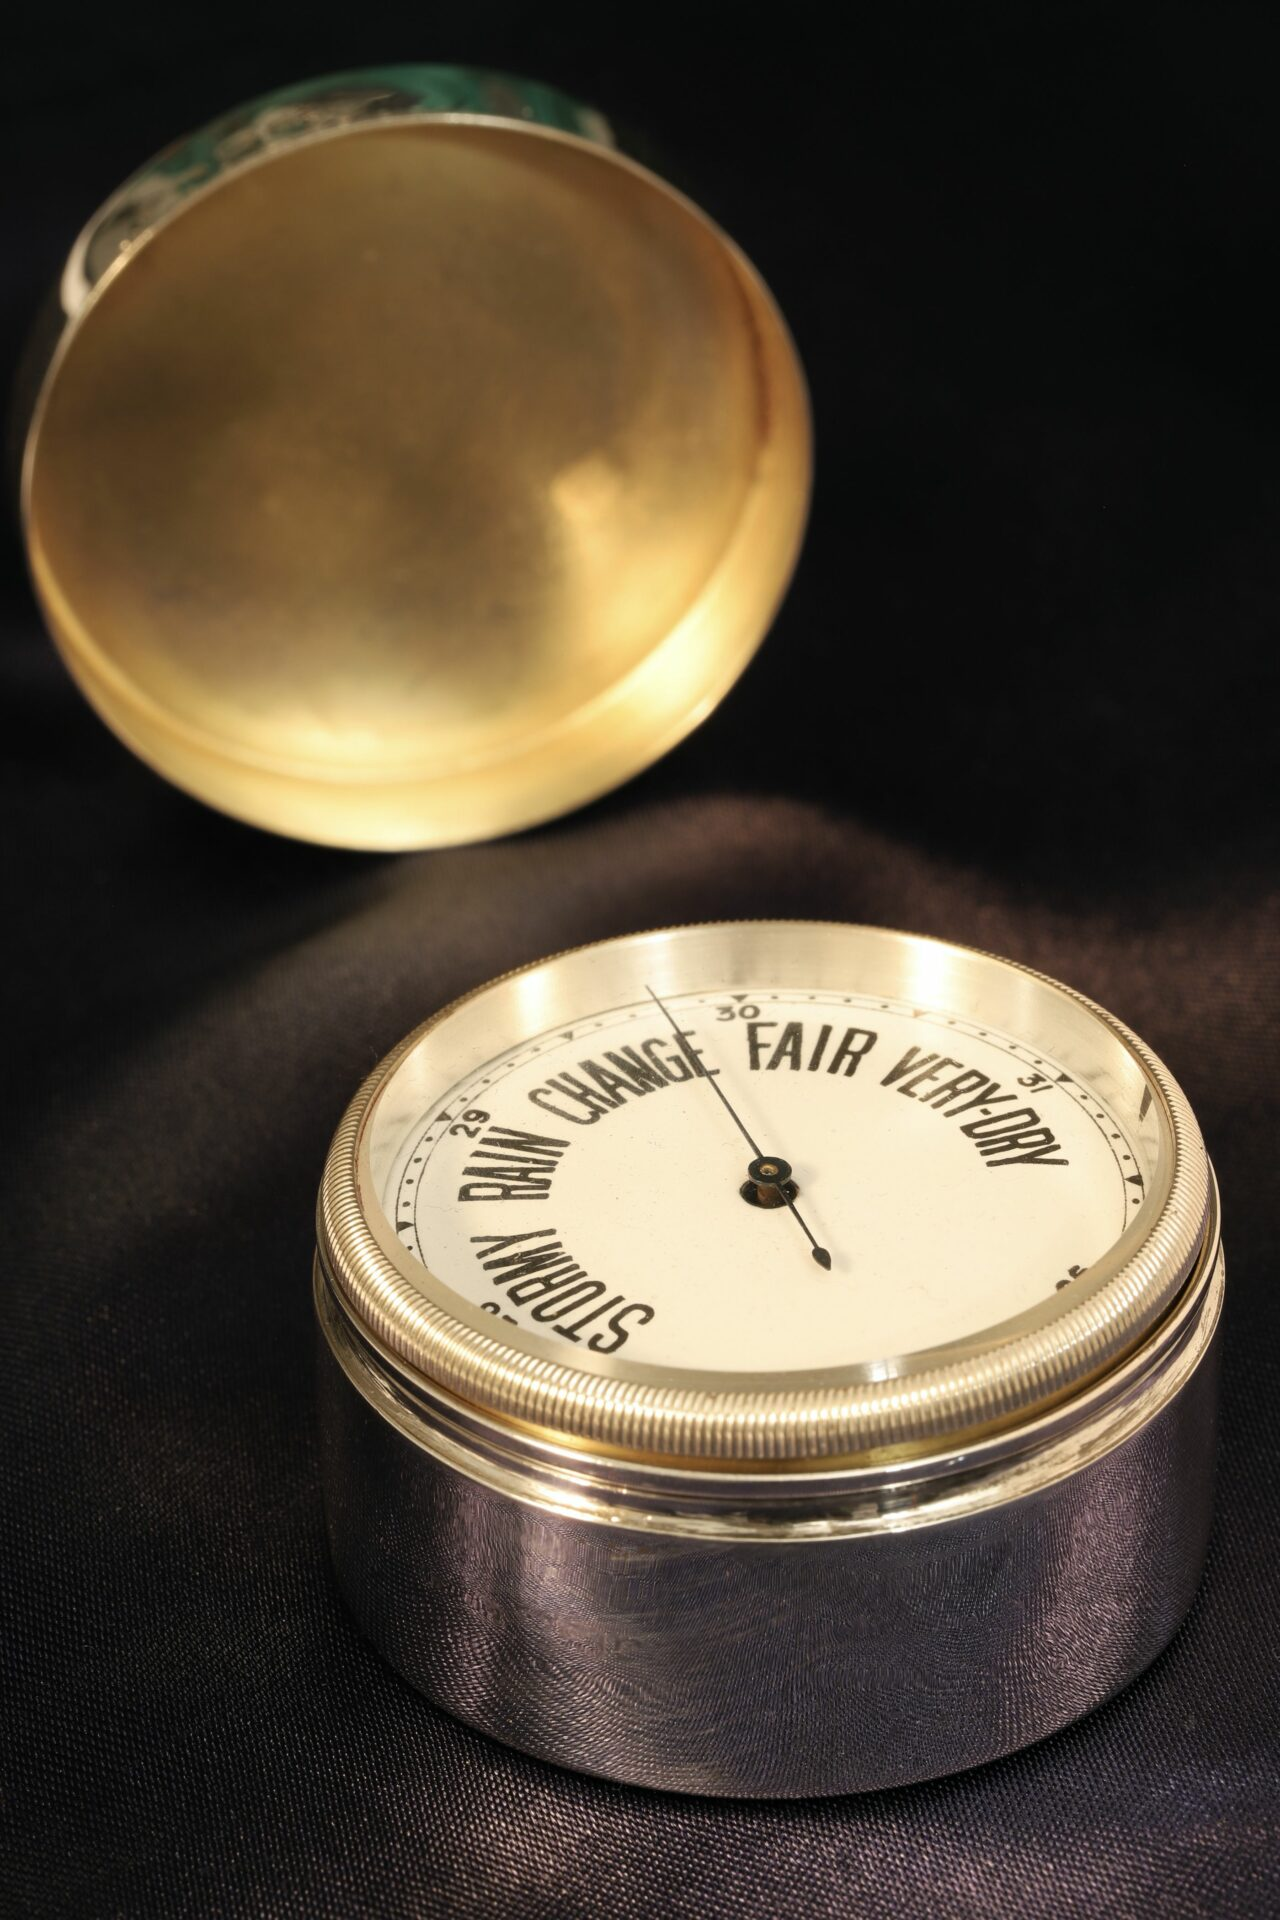 Image of open case of Silver Travel Barometer by Gourdel Vales c1900 showing barometer dial and silver gilt inner lid